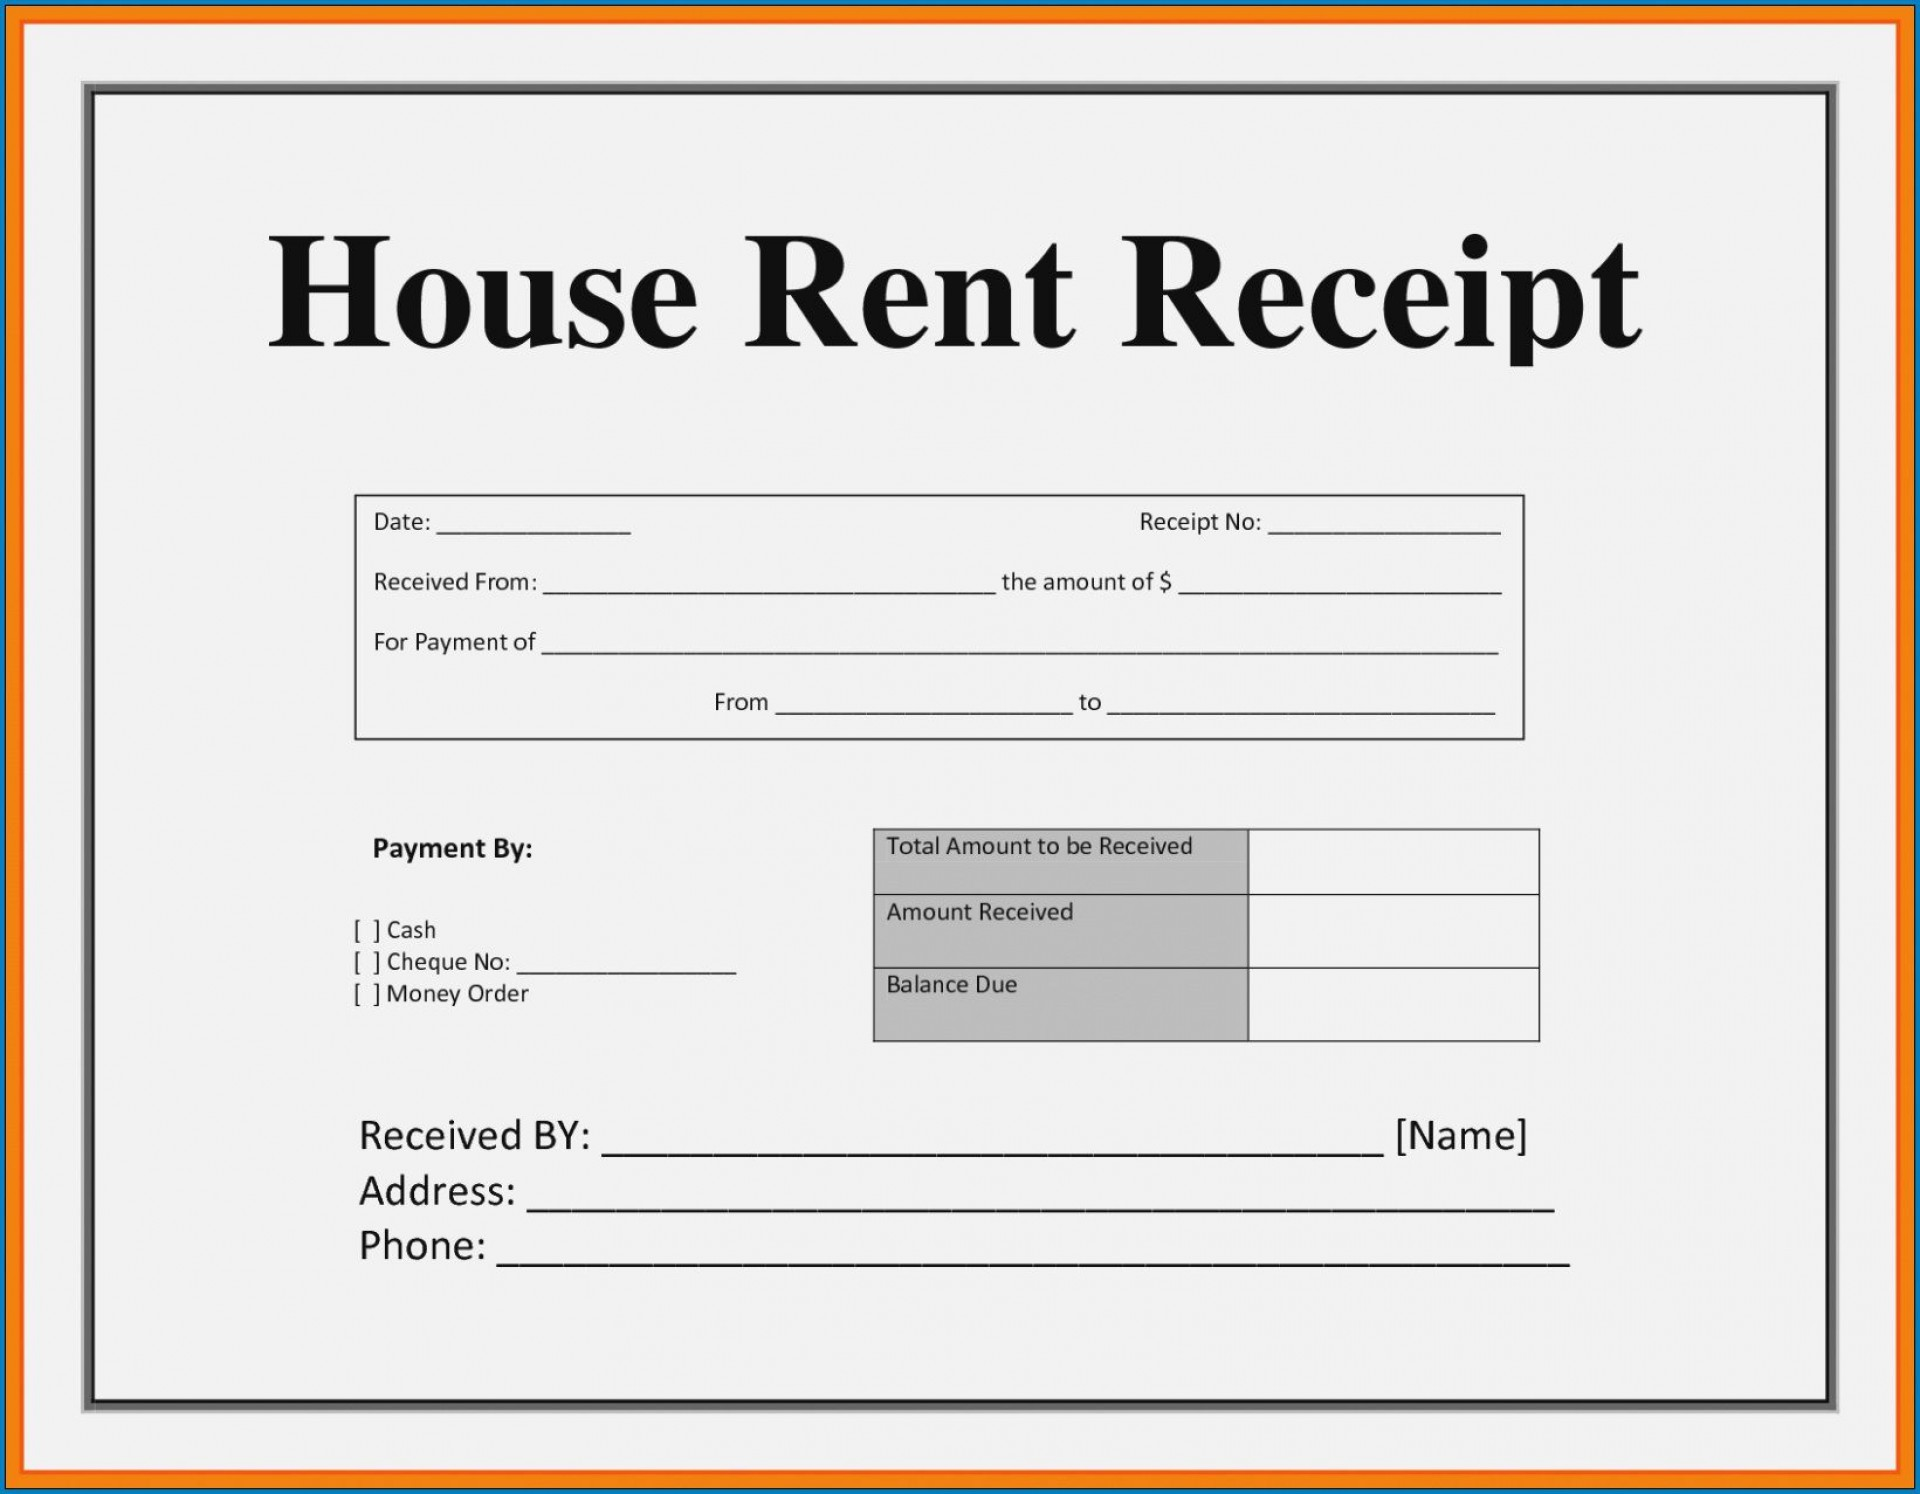 003 Striking House Rent Receipt Sample Doc Inspiration  Template Word Document Free Download Format For Income Tax1920